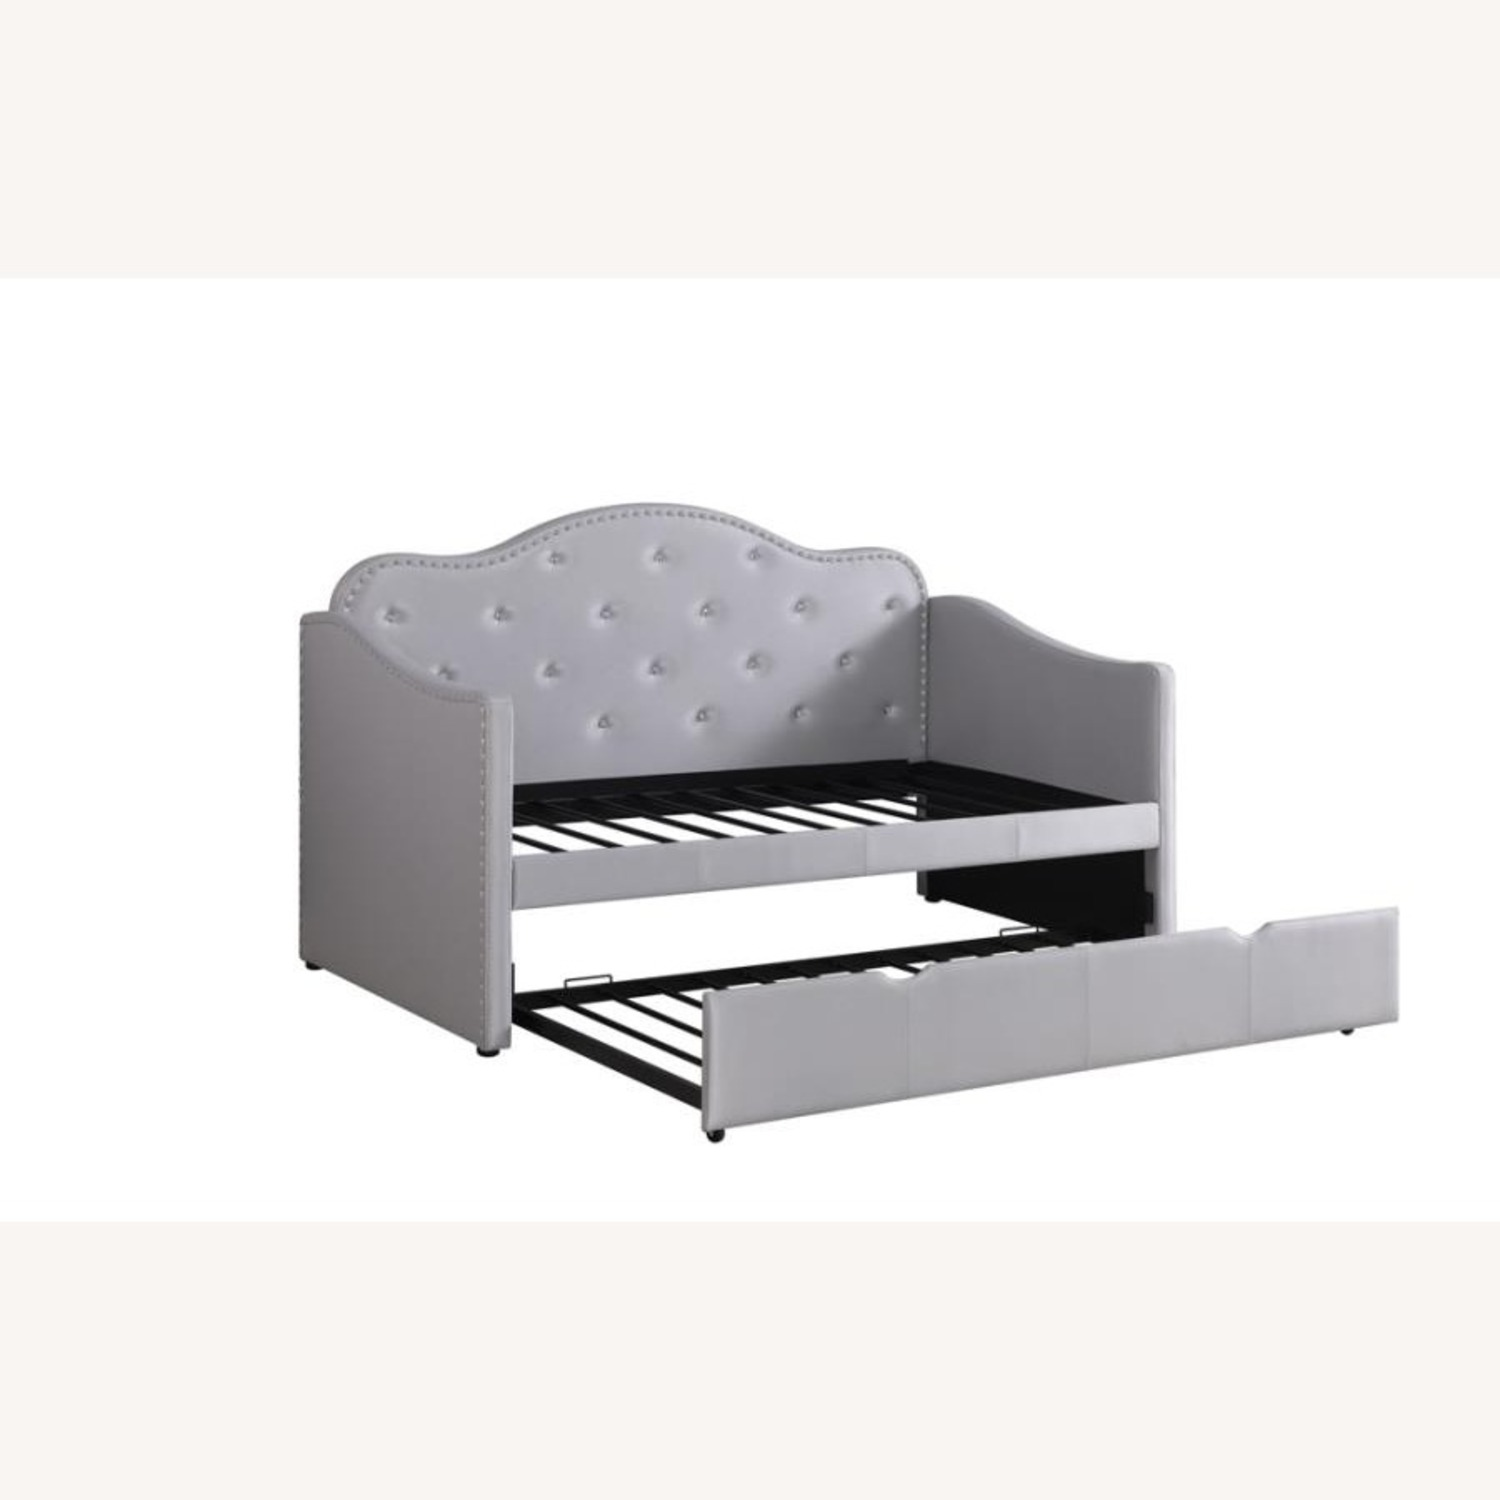 Daybed In Pearlescent Grey Leatherette Finish - image-6